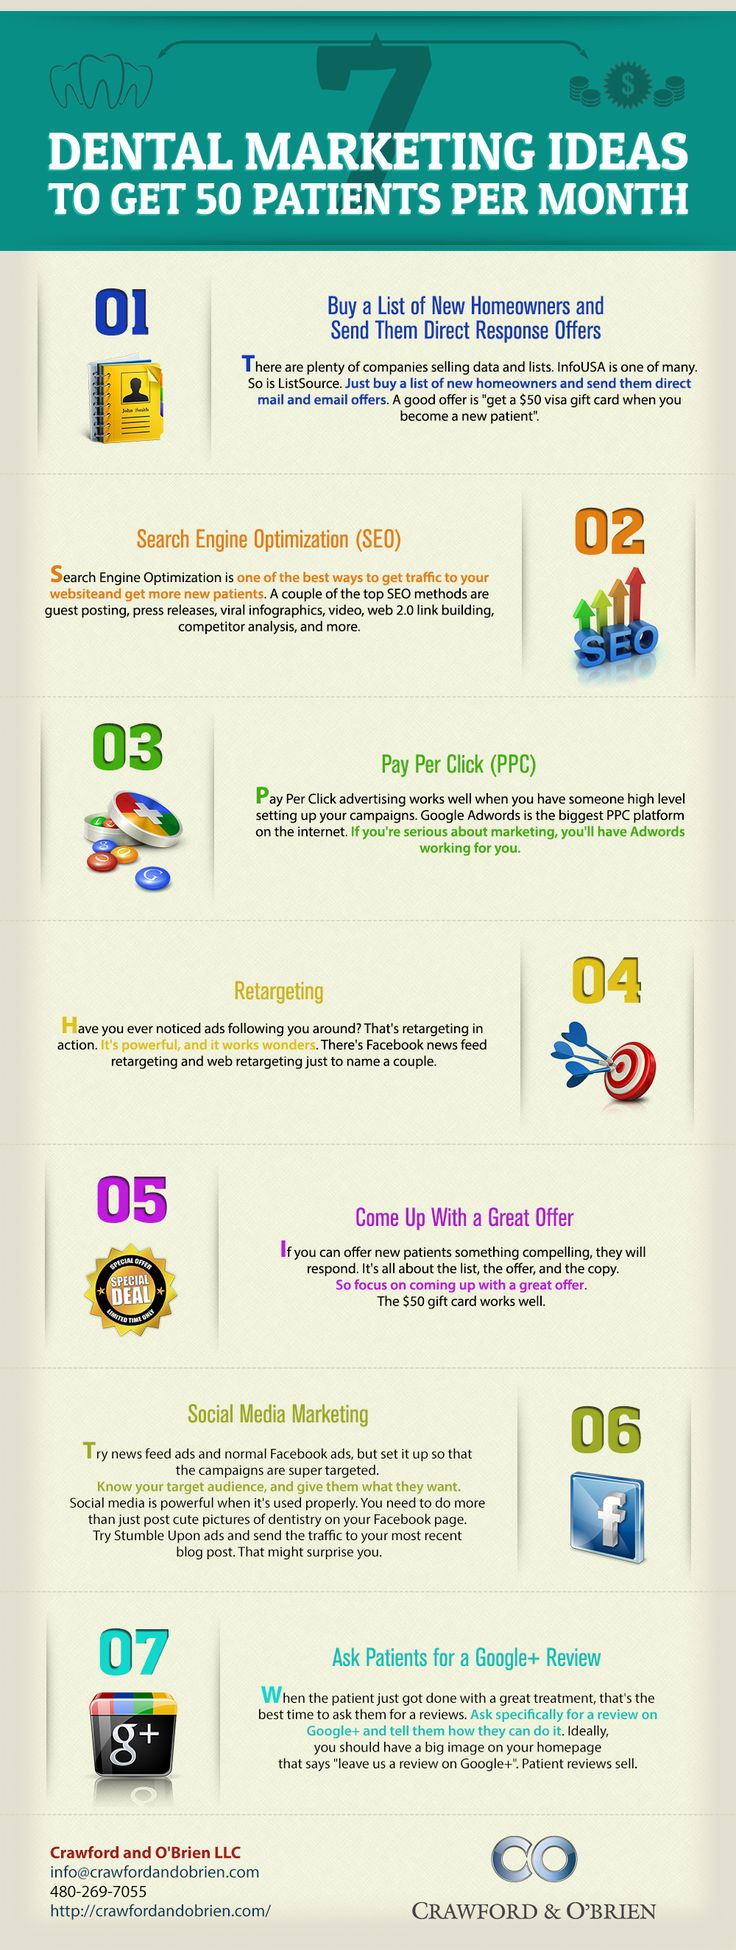 Algunas ideas para marketing dental #infografia #infographic #marketing